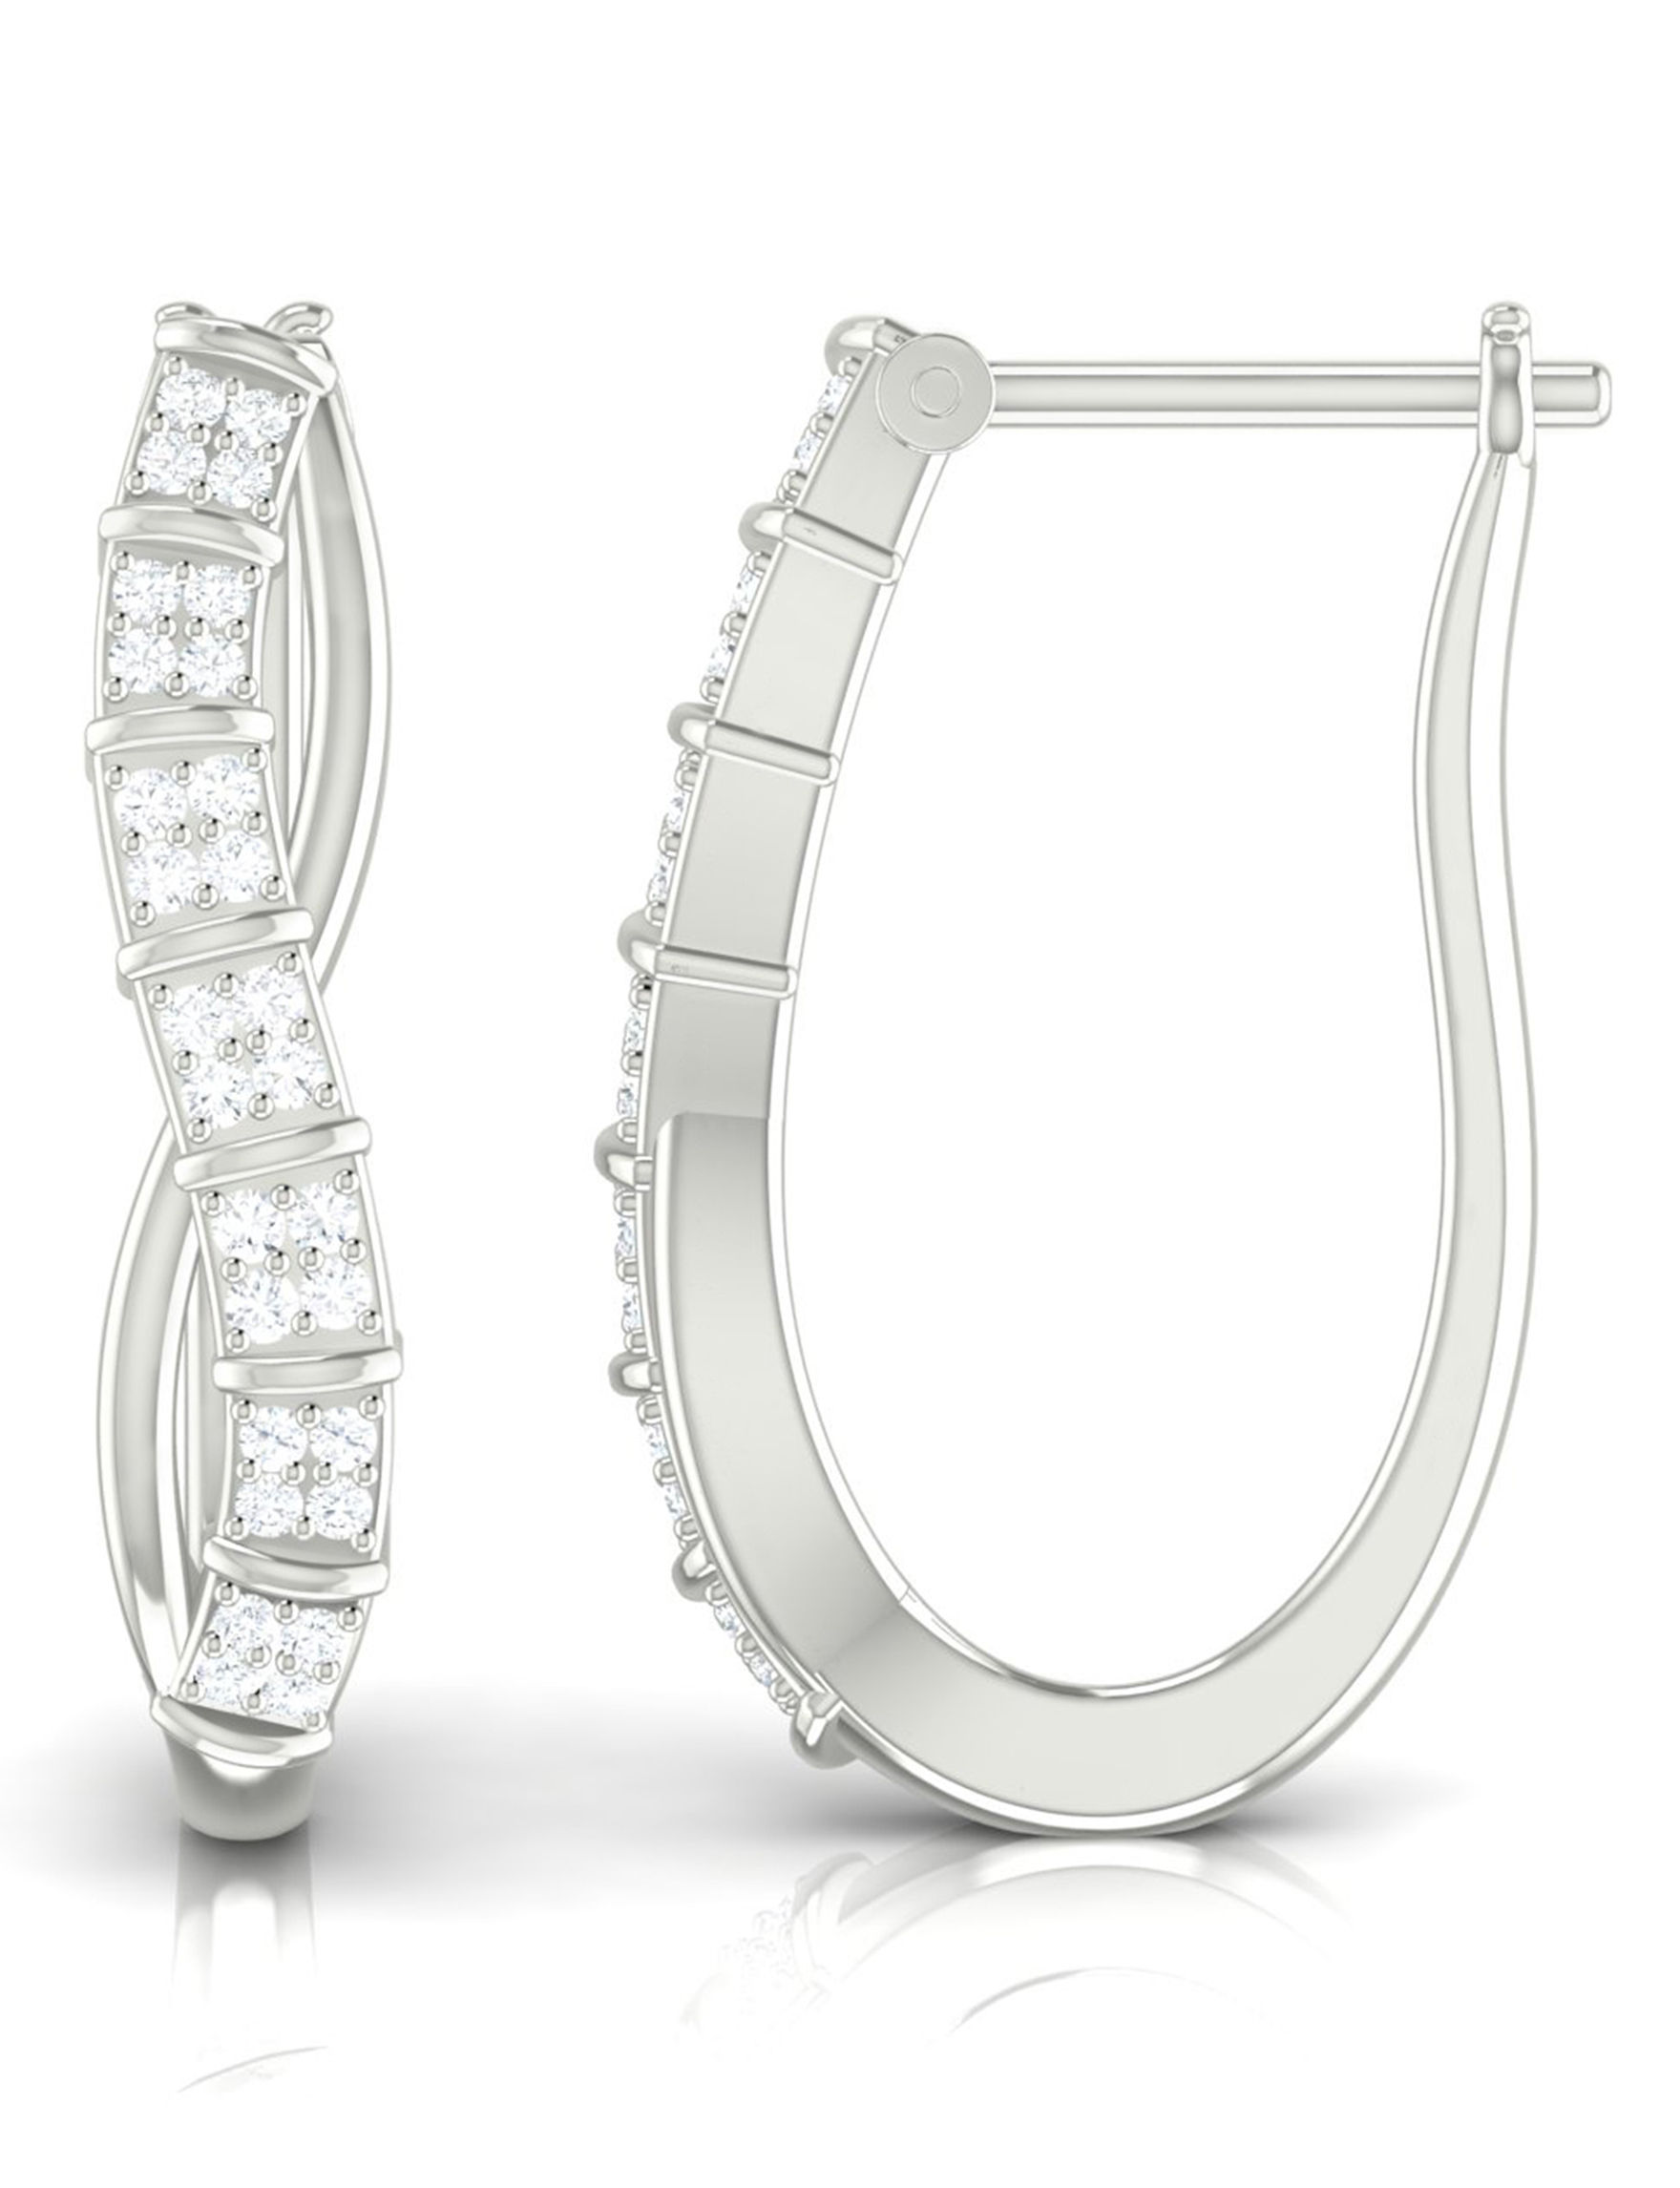 Shriyam Silver Hoops Earrings Fine Jewelry